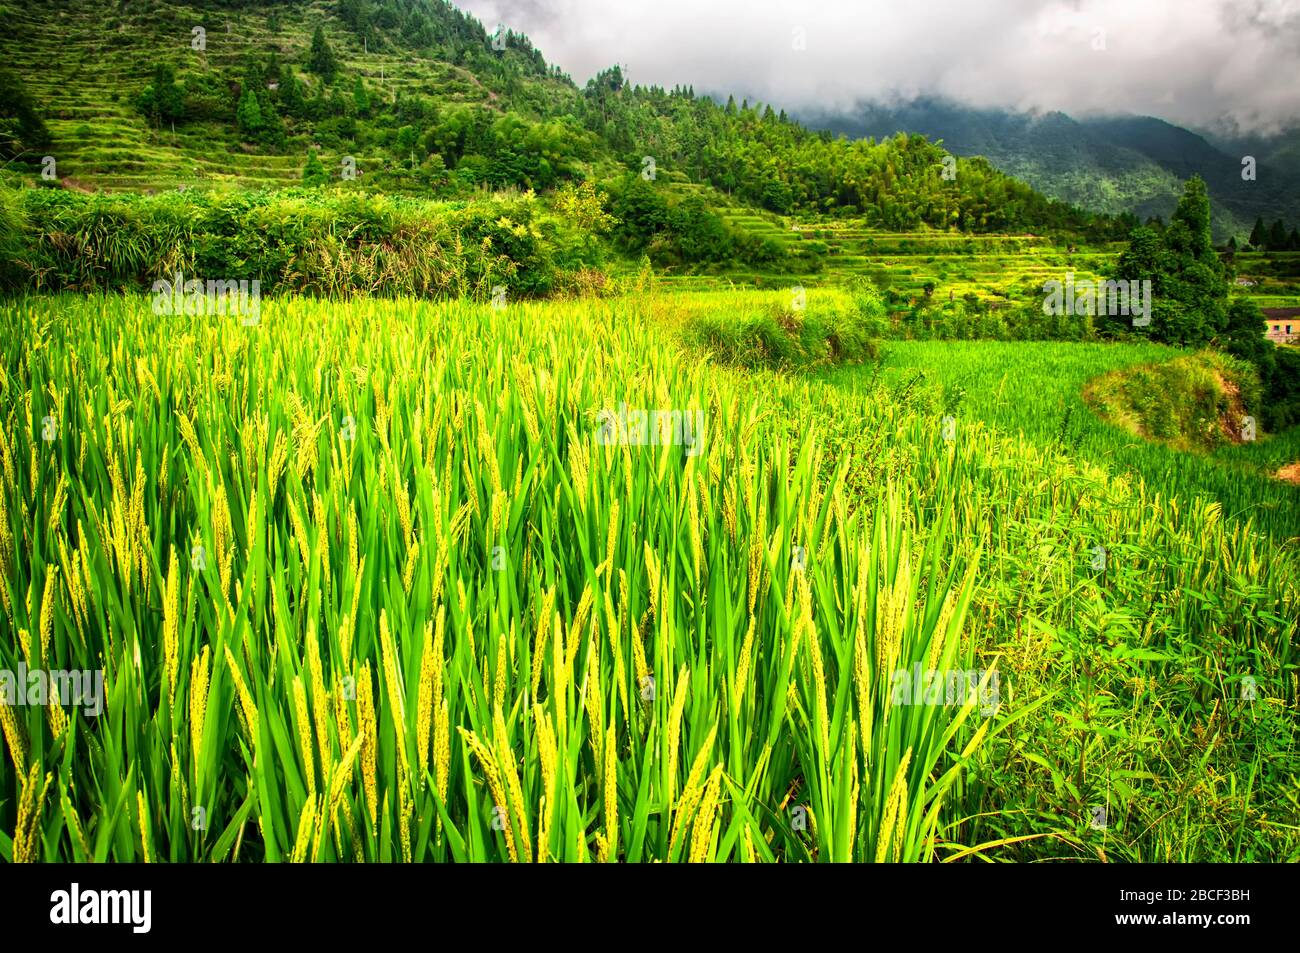 The Yunhe cloud rice terraces landscape in the summer in Zhejiang province China on a foggy overcast day. Stock Photo